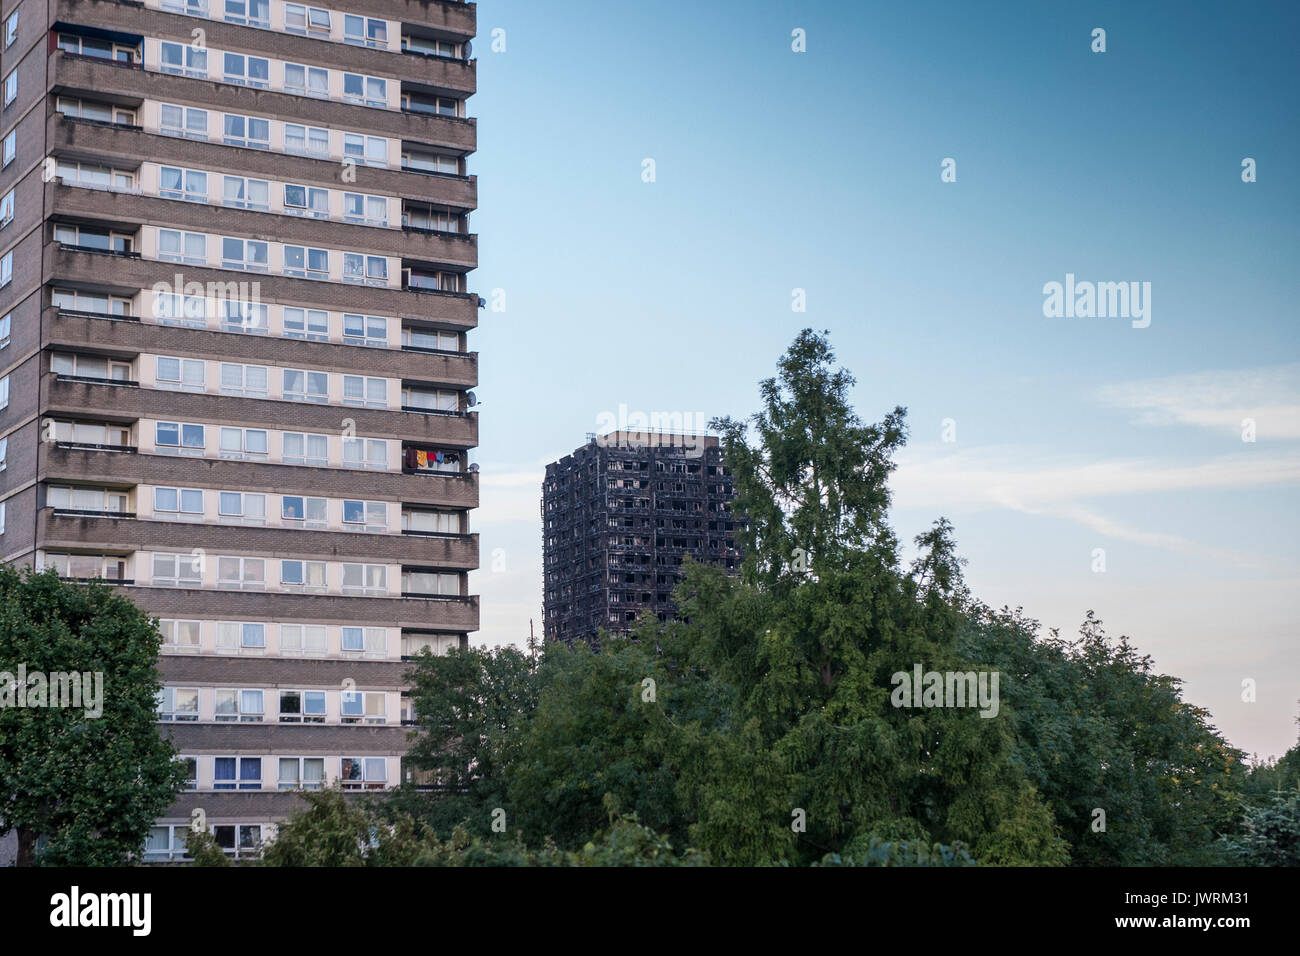 The charred remains of Grenfell Tower - Stock Image